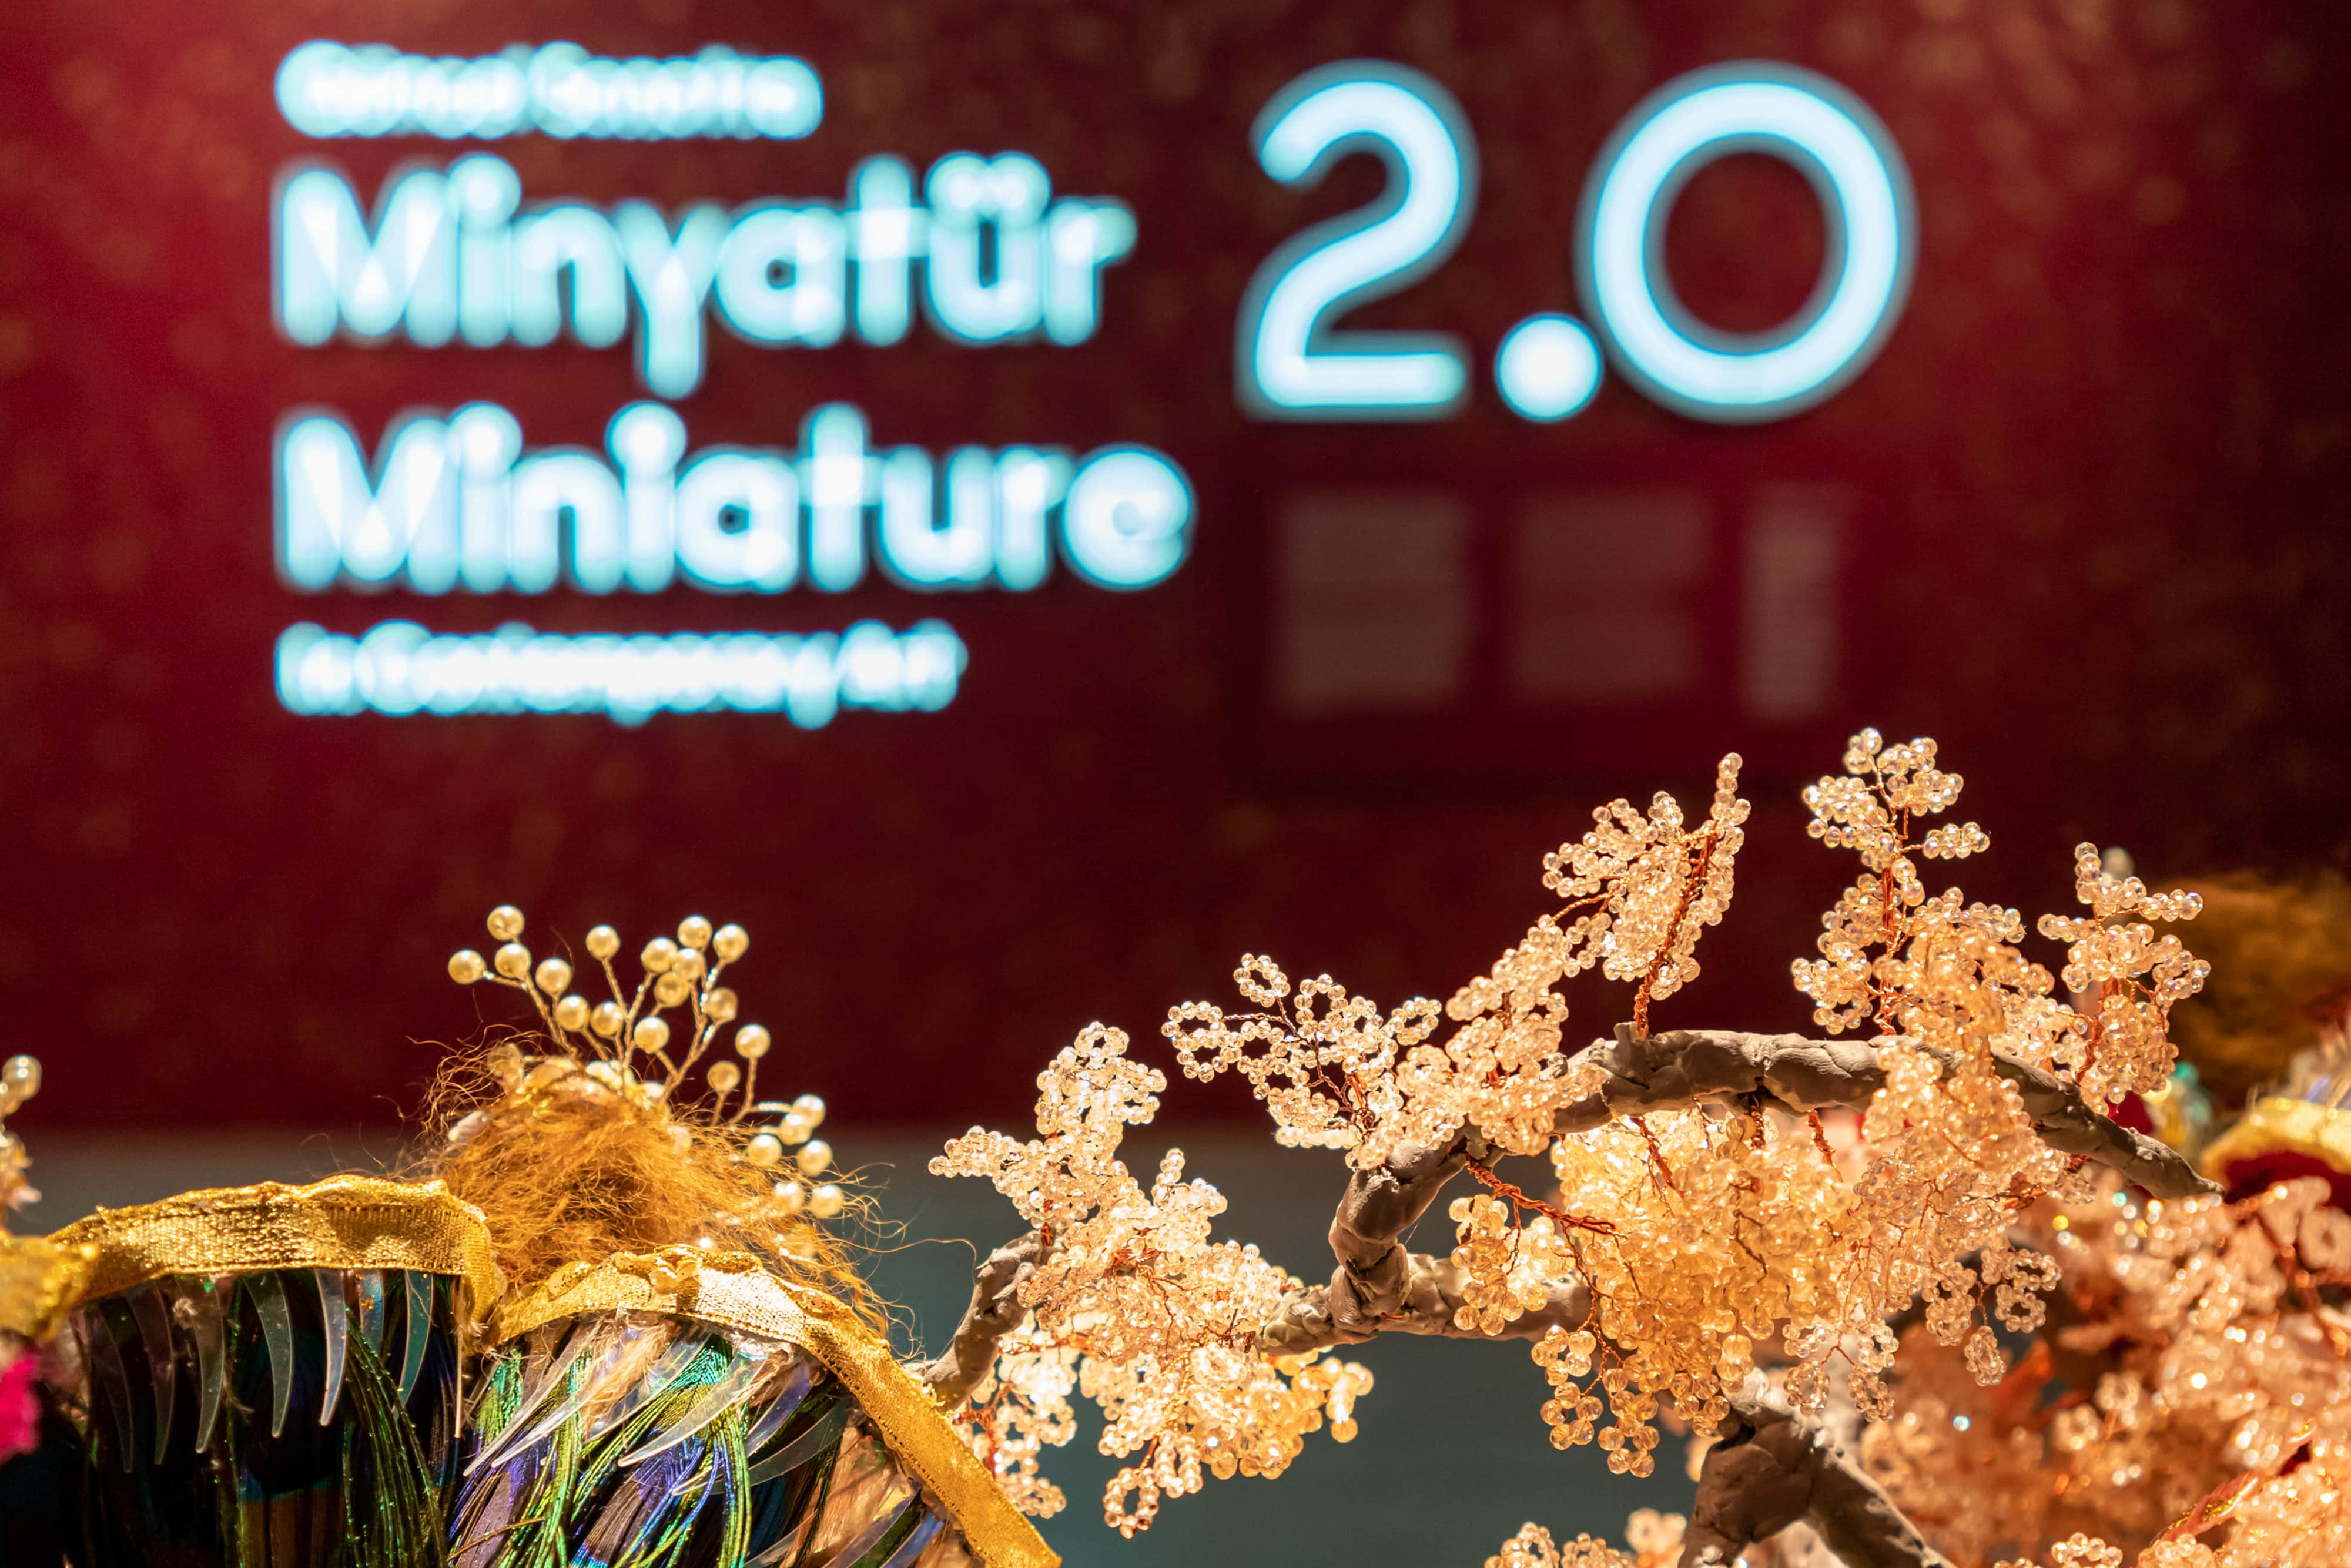 Miniature 2.0 gallery 15